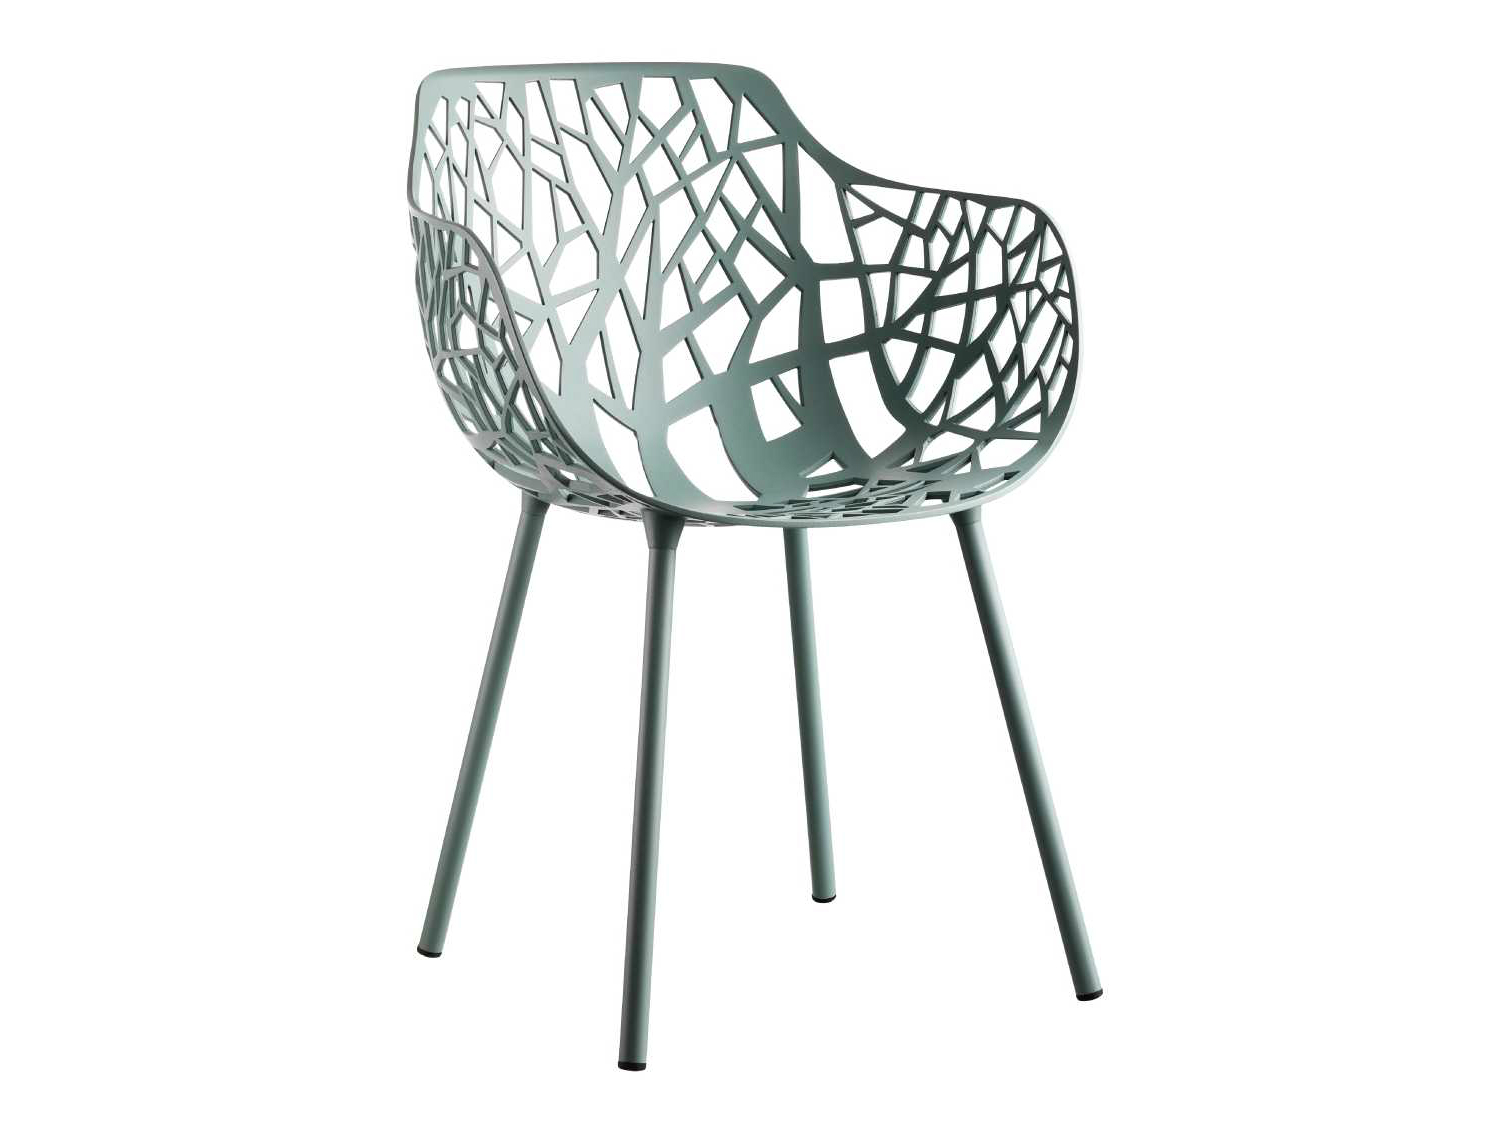 Fast-forest-armchair-stoel-lightblue-2-def